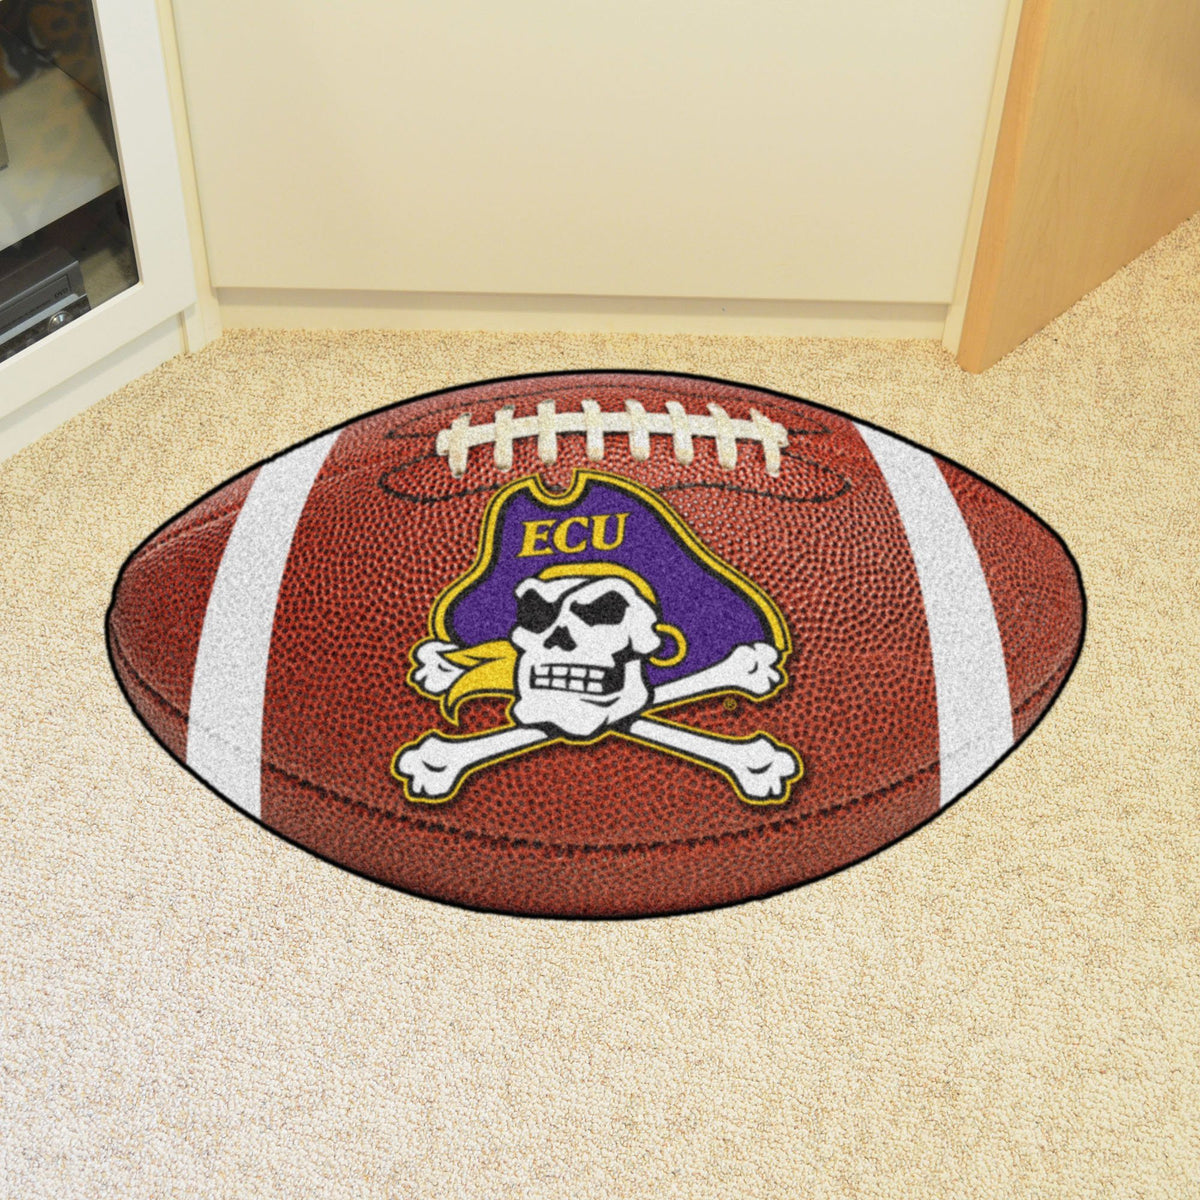 Collegiate - Football Mat: A - K Collegiate Mats, Rectangular Mats, Football Mat, Collegiate, Home Fan Mats East Carolina